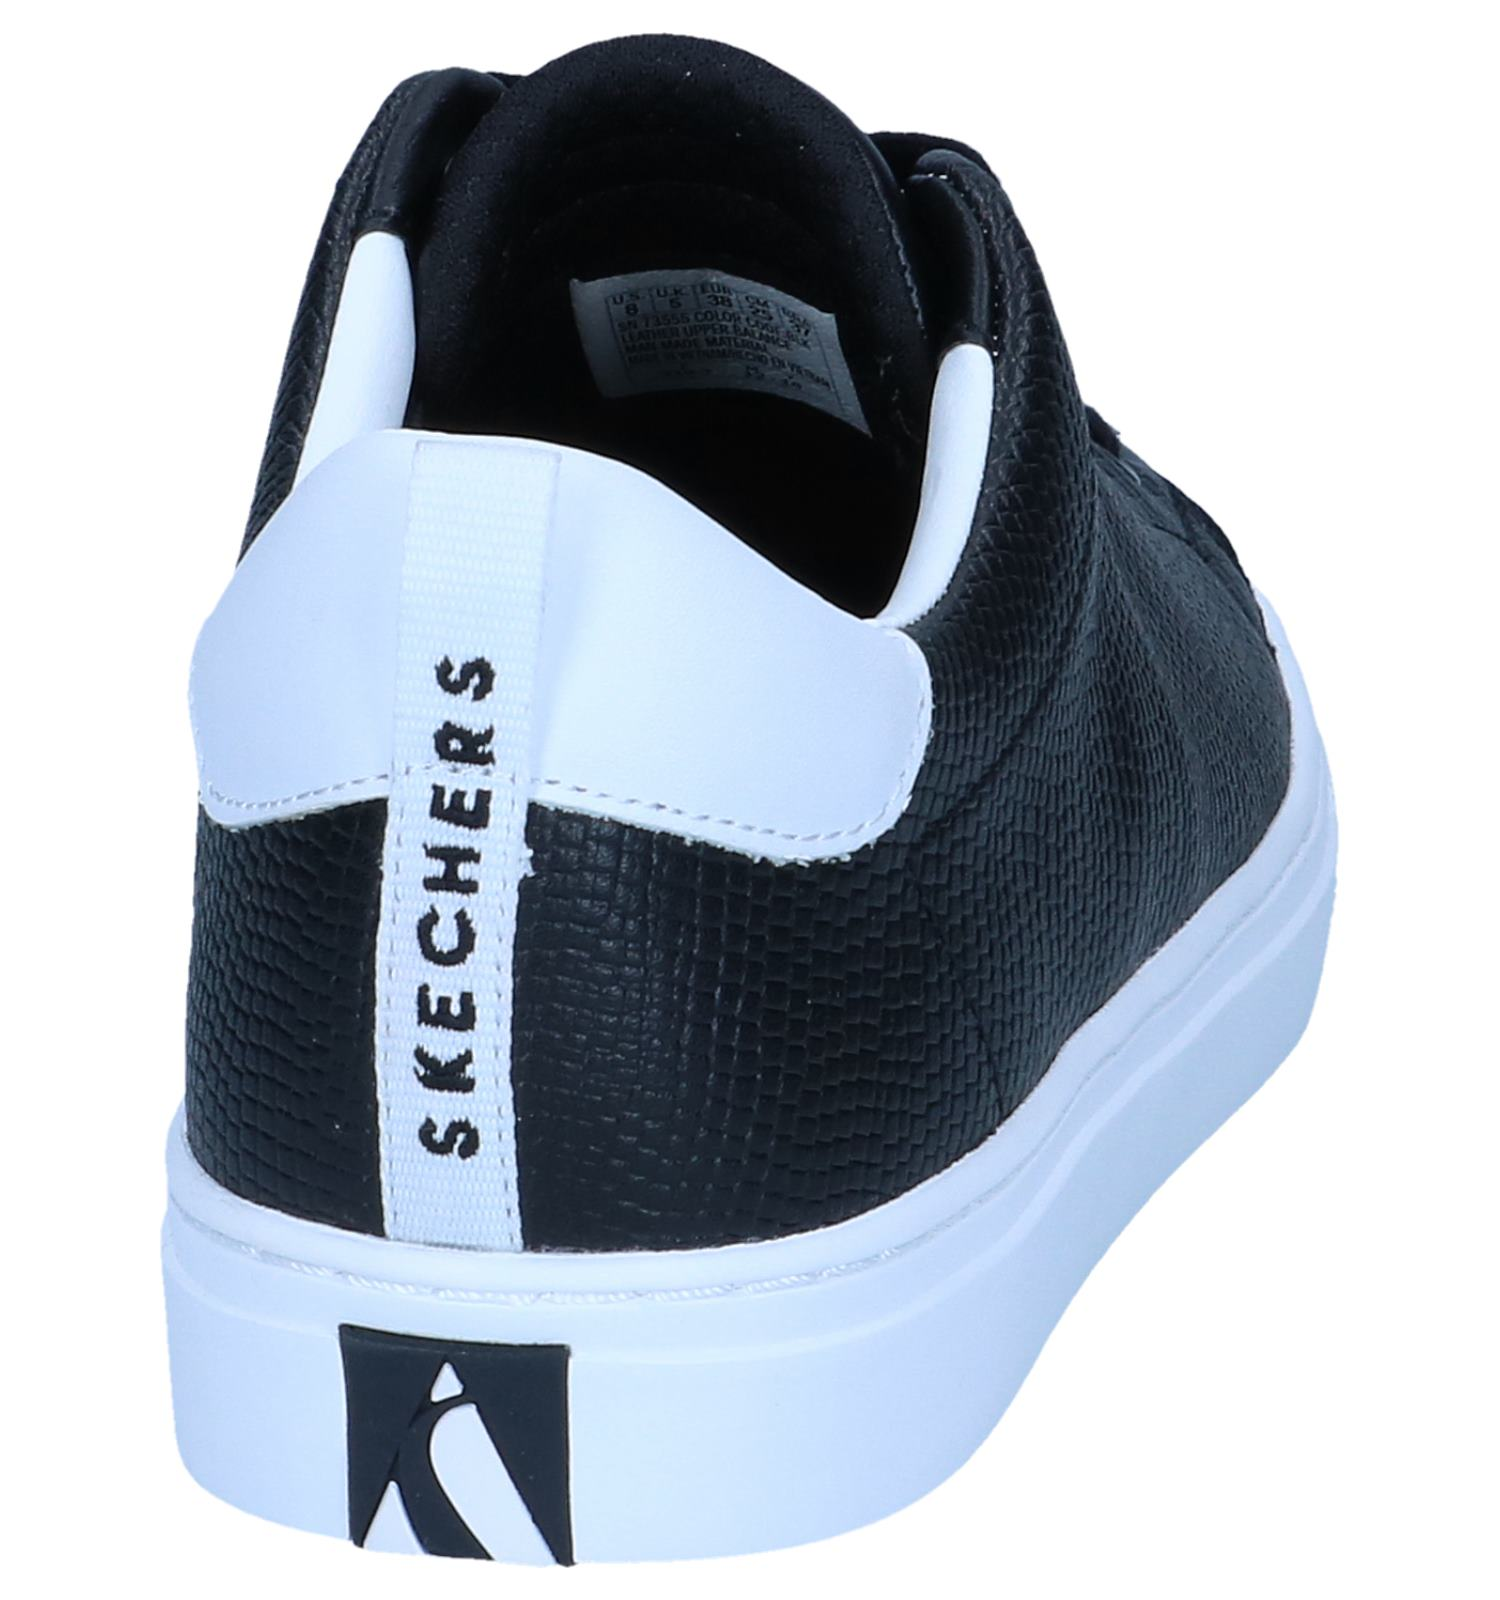 Sneakers Zwarte Side Skechers Street Tegu JclK3TF1